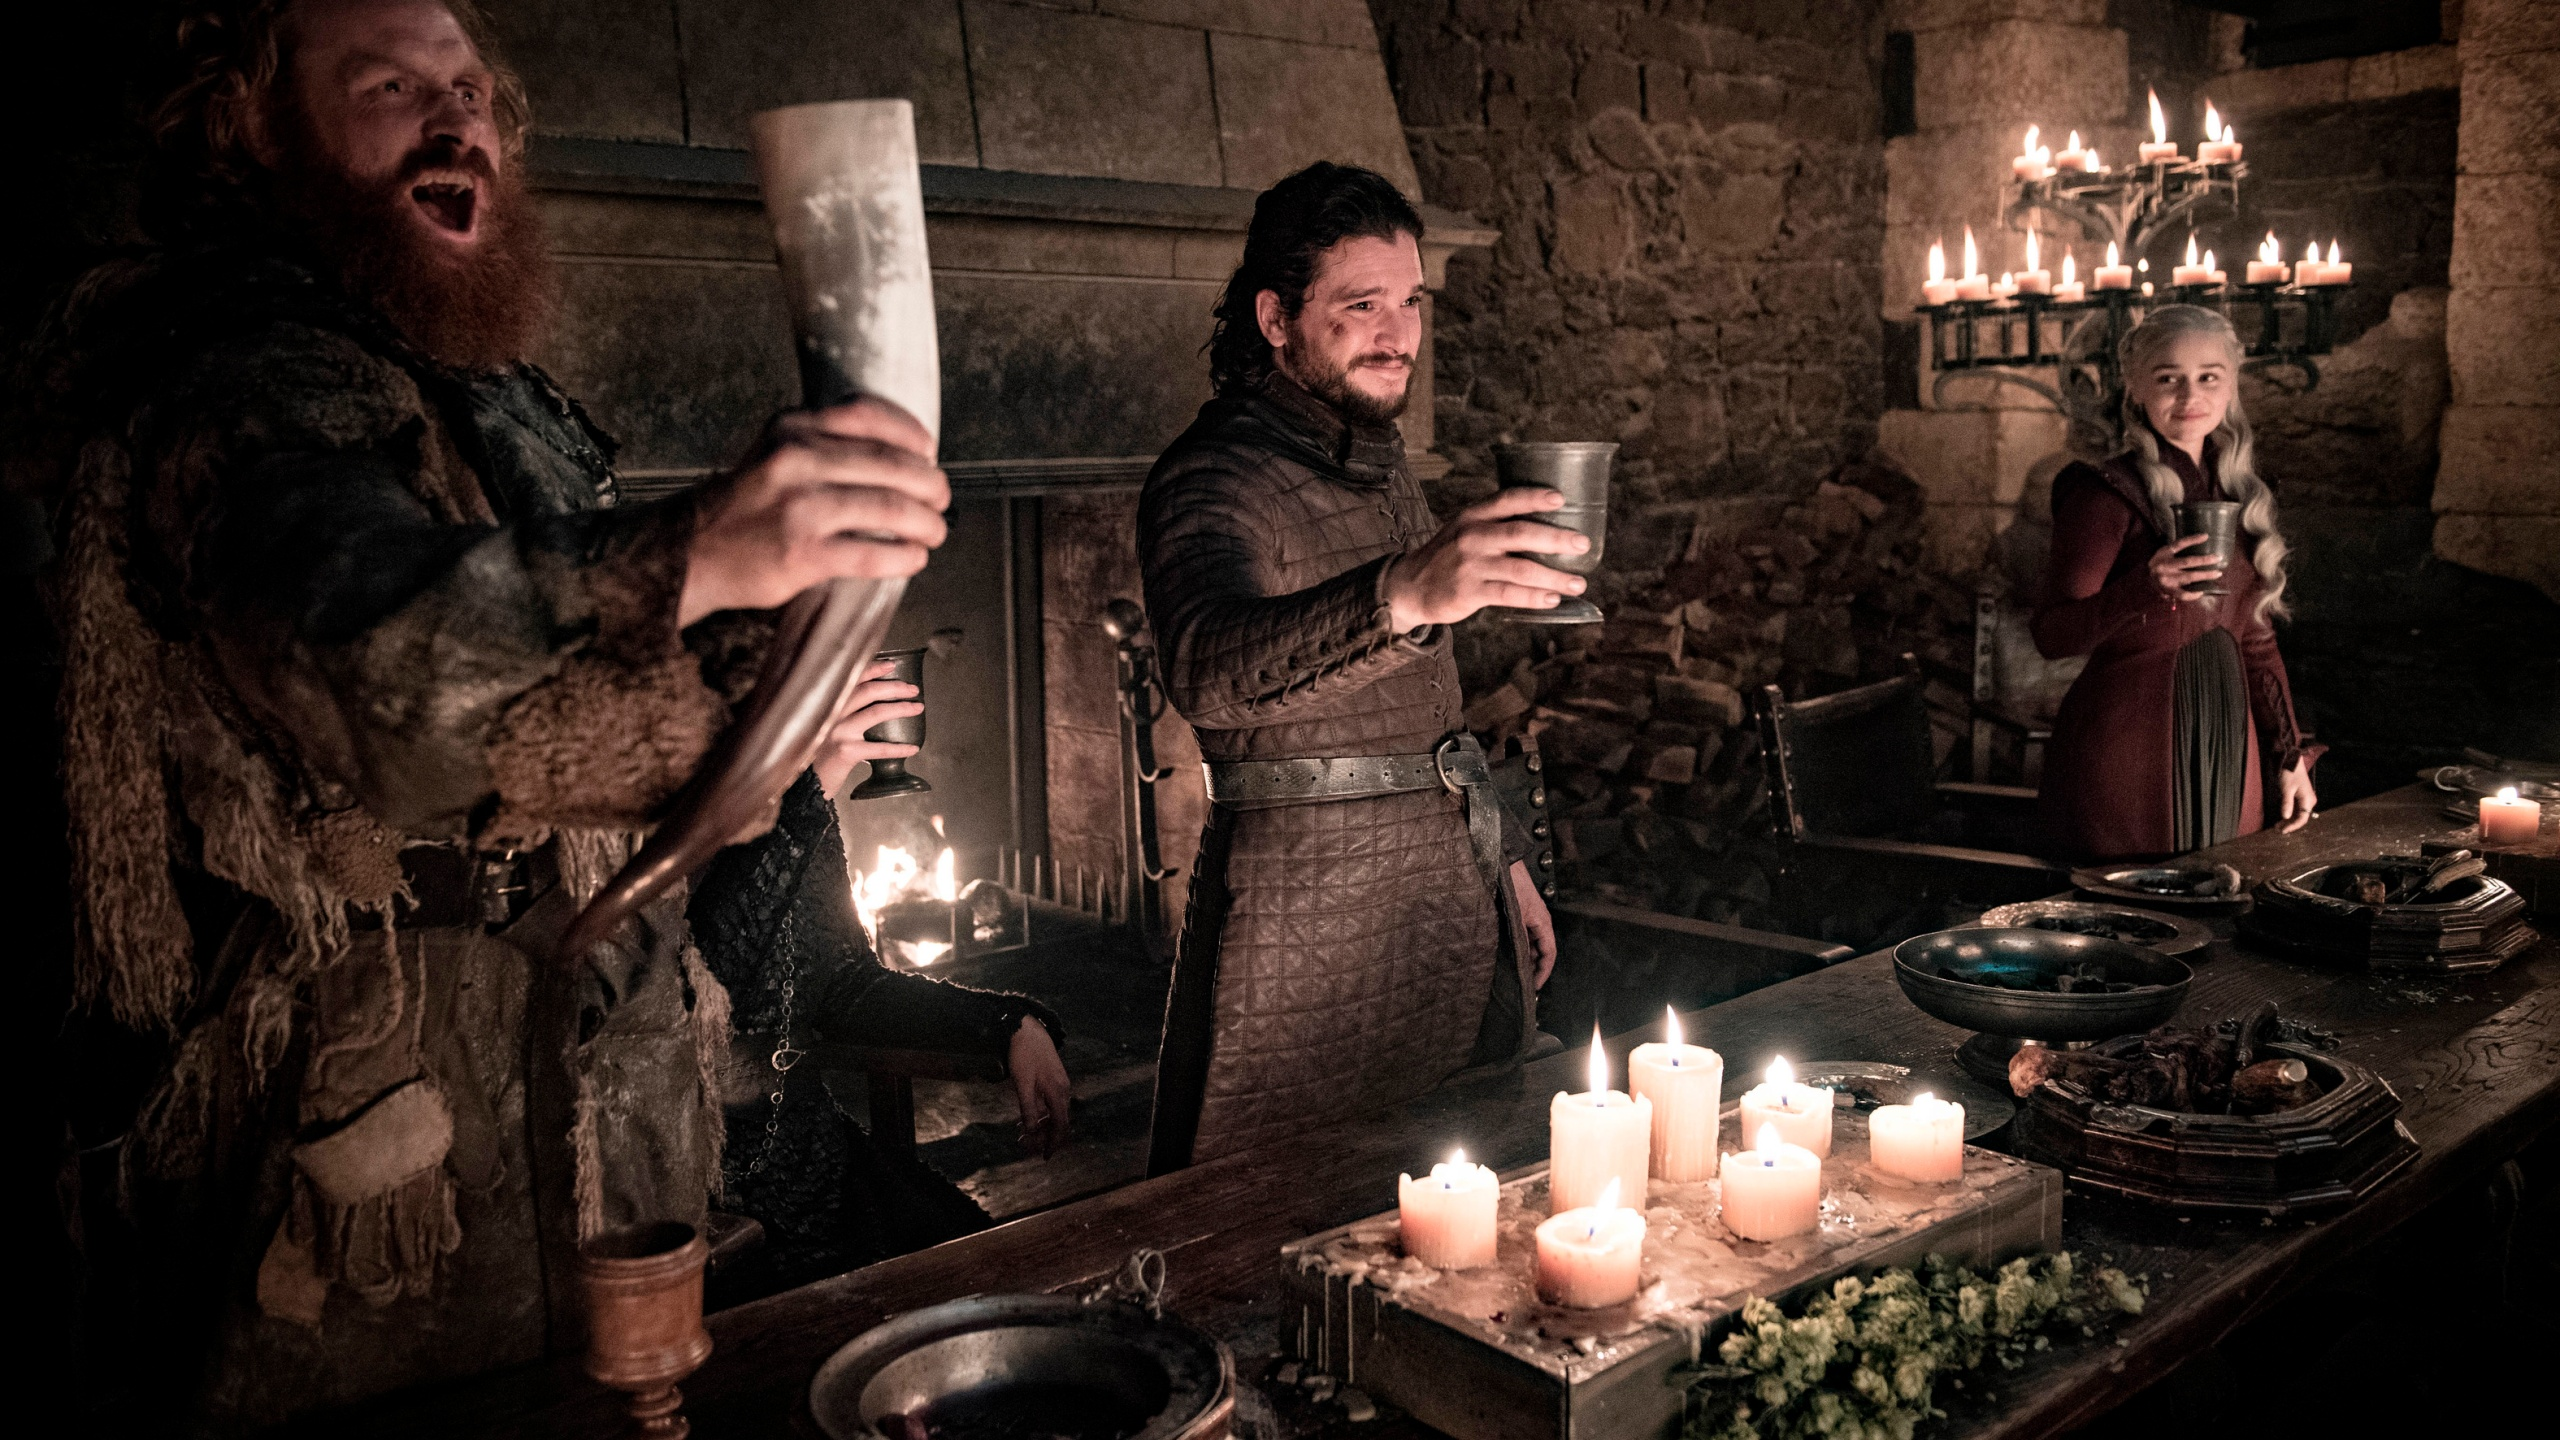 Game_of_Thrones-Coffee_Cup_14622-159532.jpg39650137